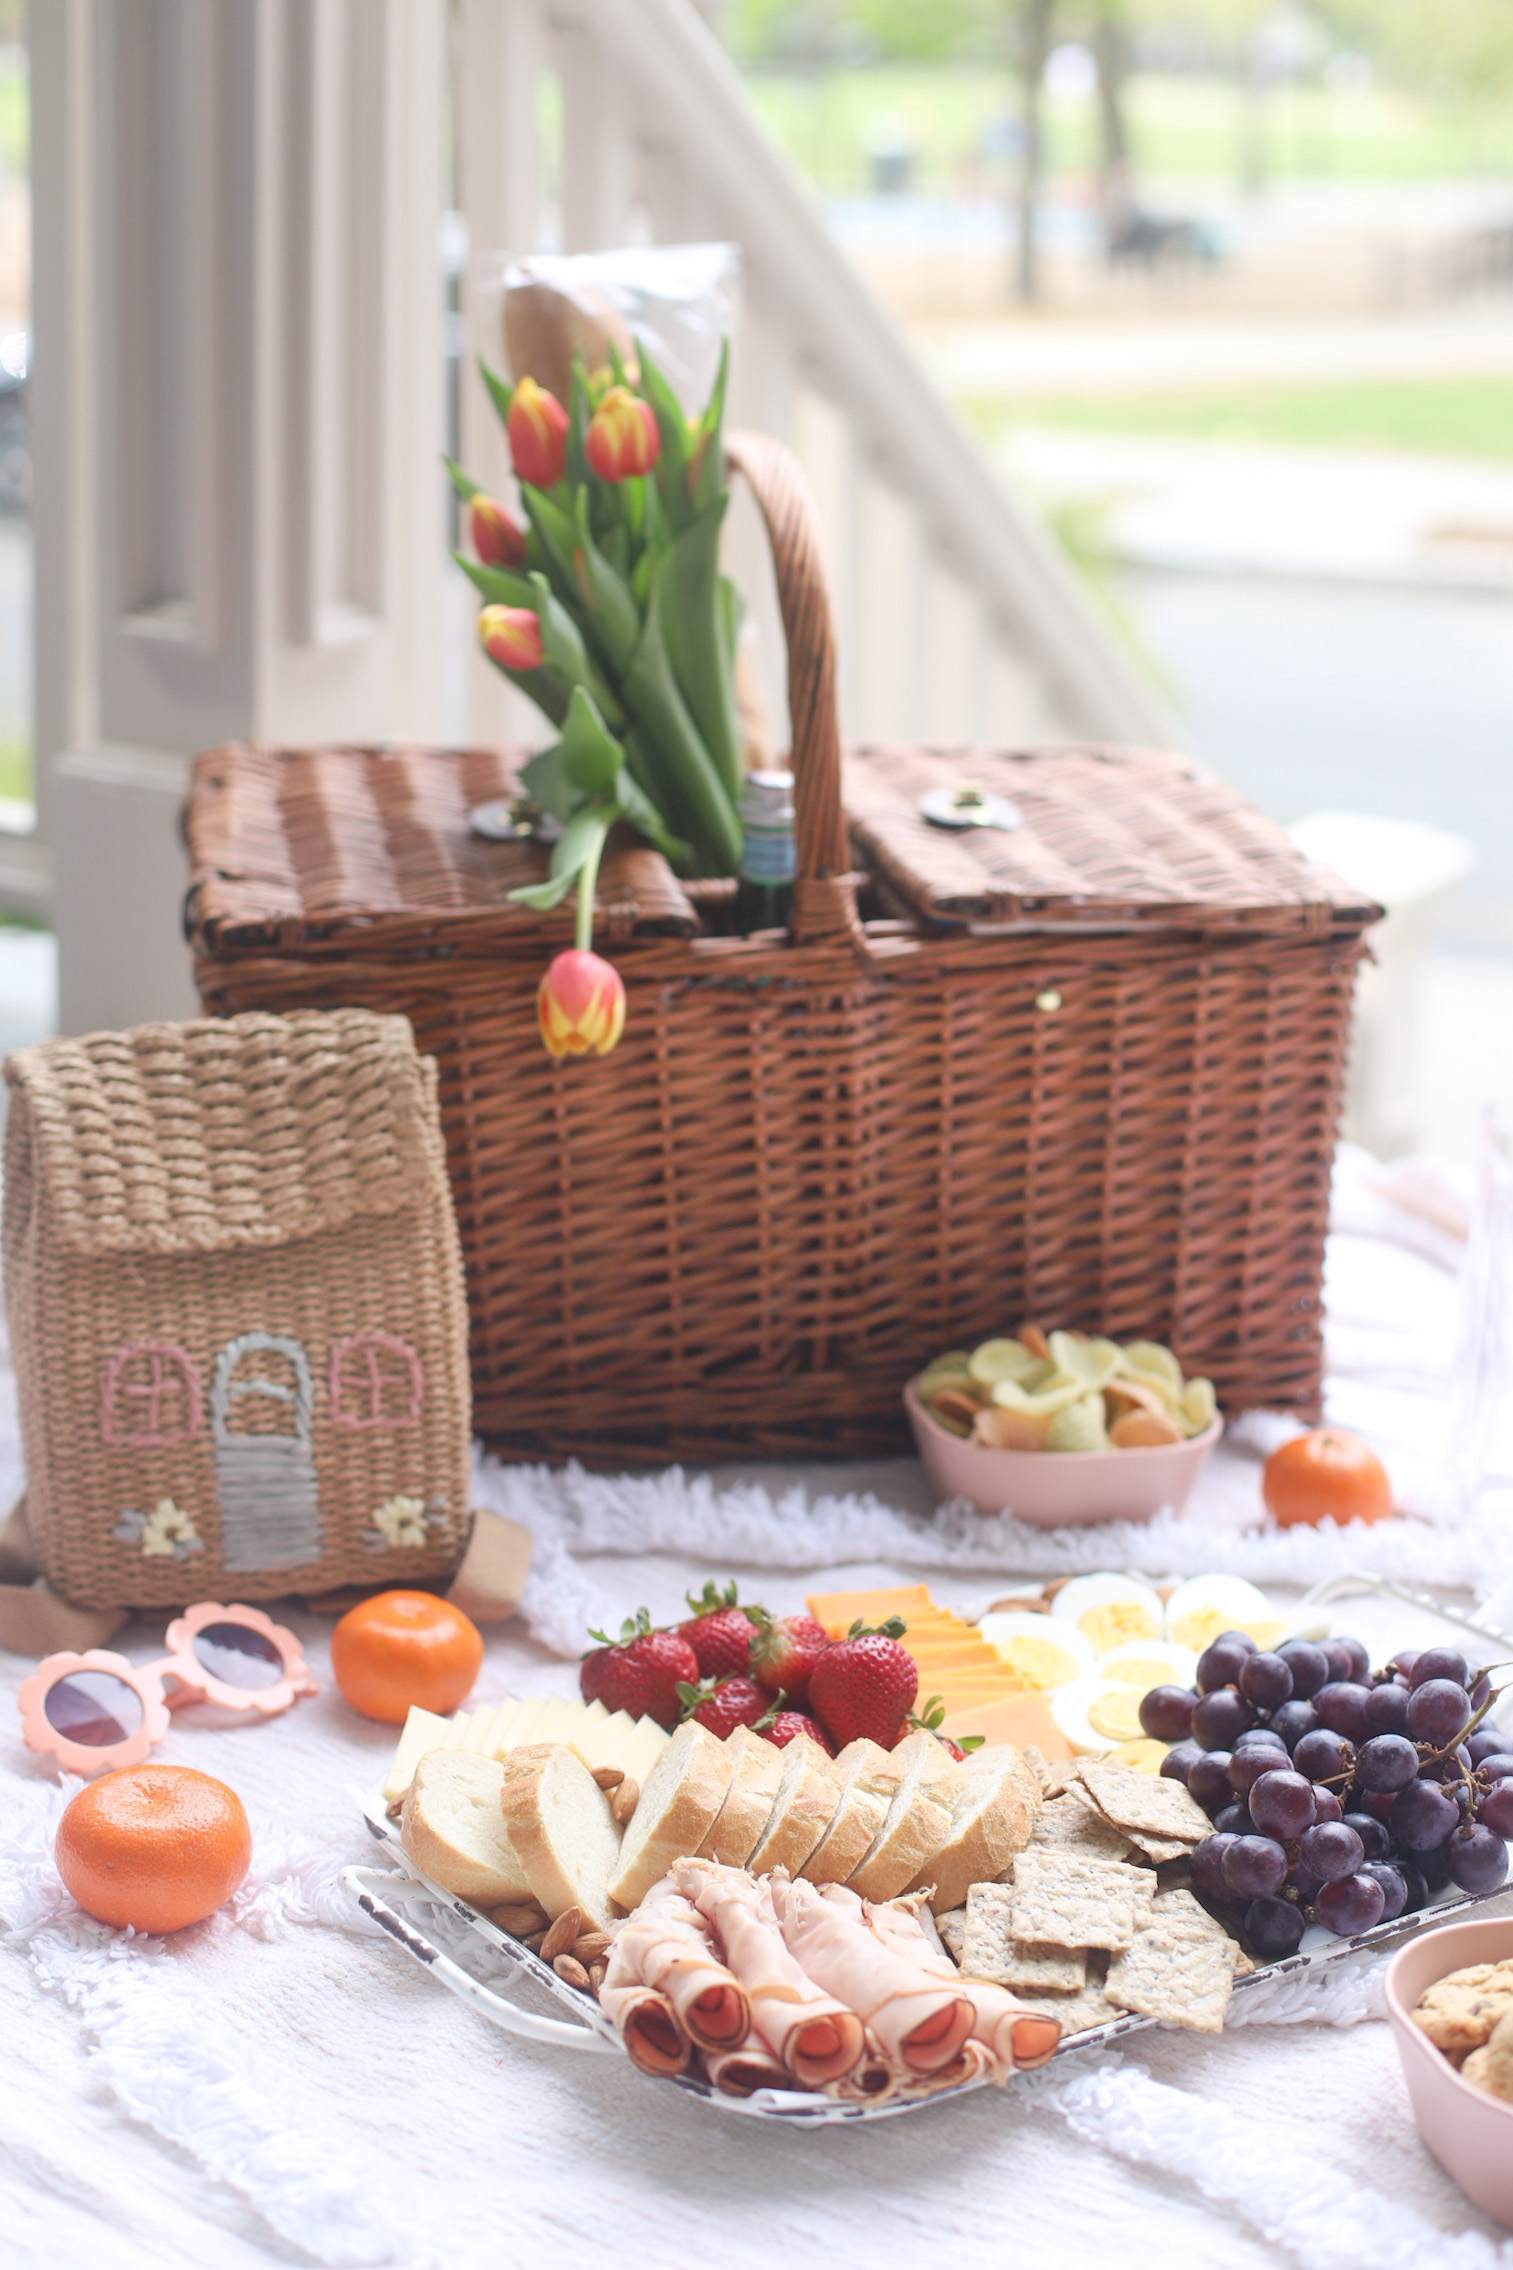 a picnic basket with flowers in it and charcuterie board